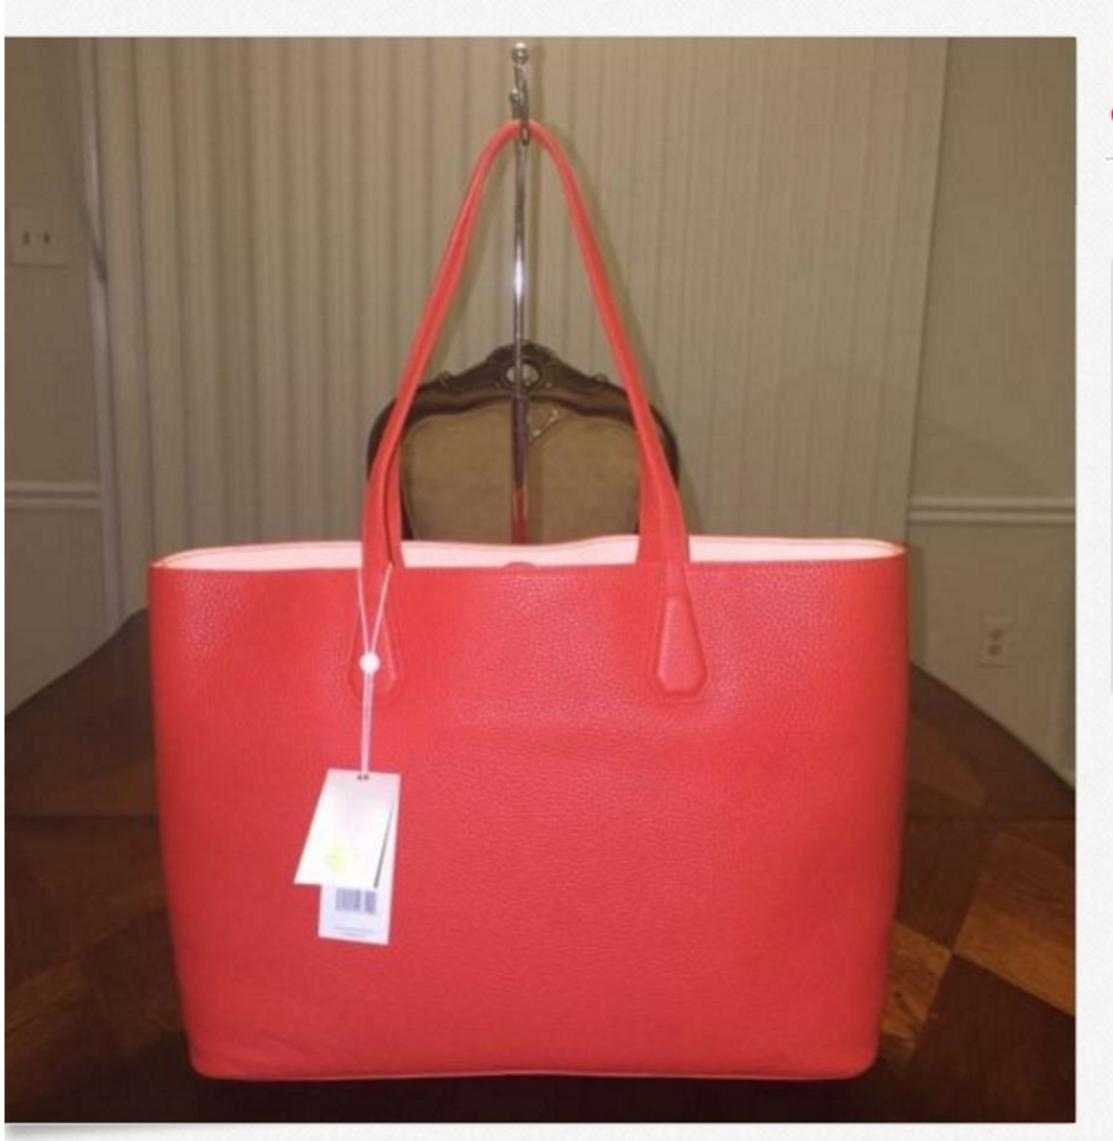 5b4386ee2a34 ... hot tory burch perry poppy red pale apricot pebbled leather tote tradesy  507cd 8969e ...